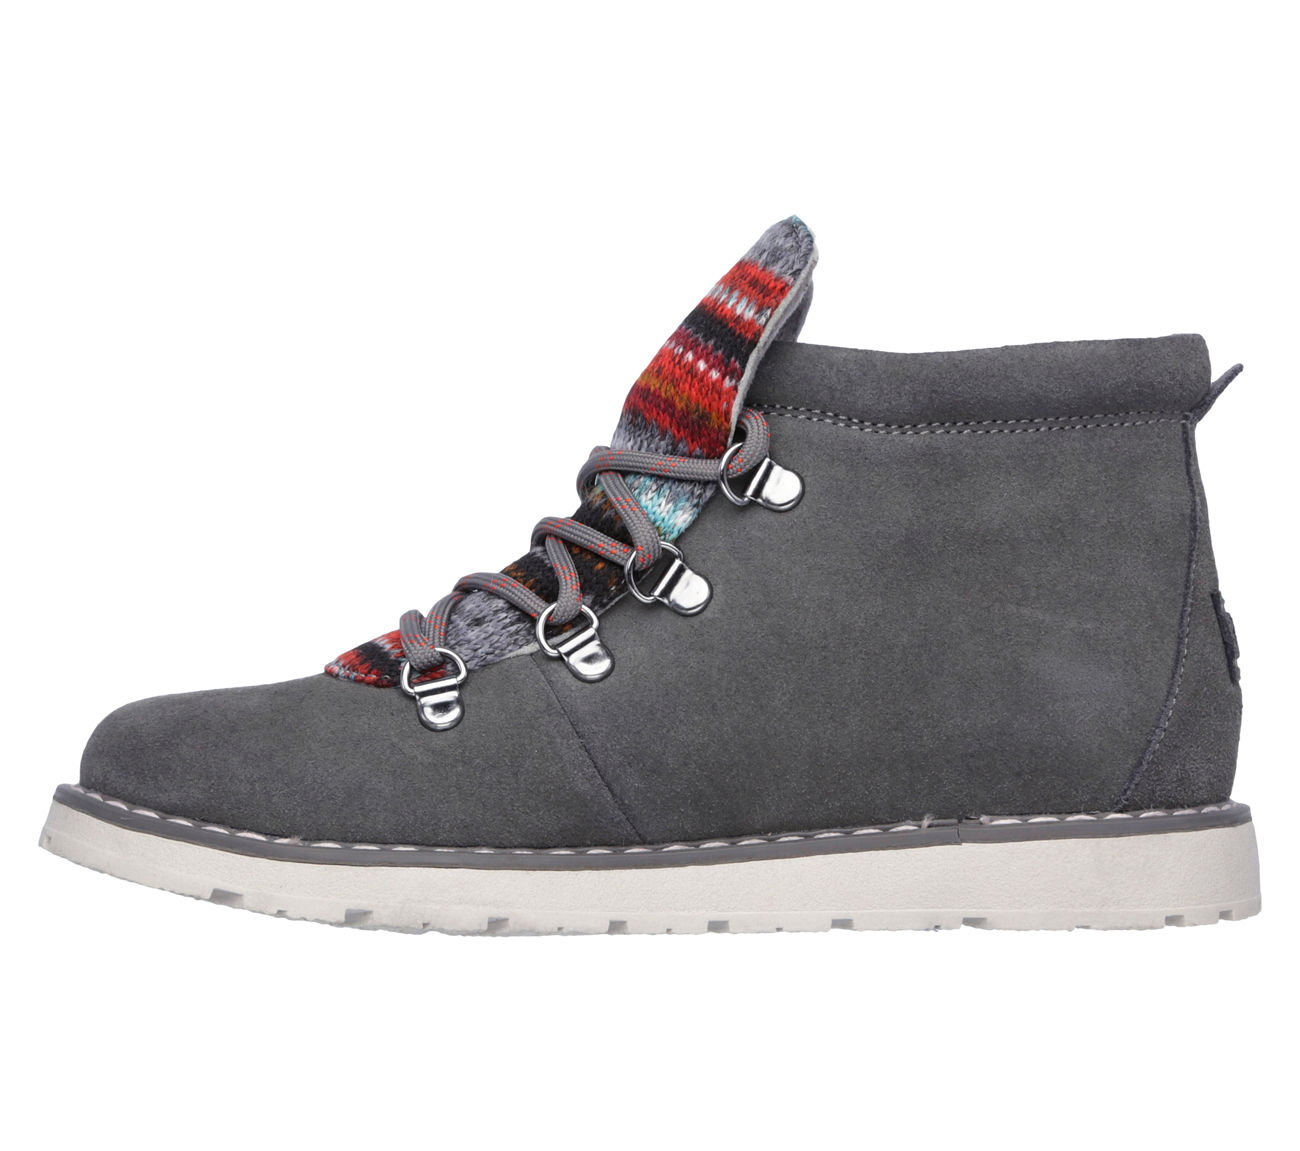 bfcf43d3c1416 Cheap skechers bobs boots >Free shipping for worldwide!OFF35% The ...